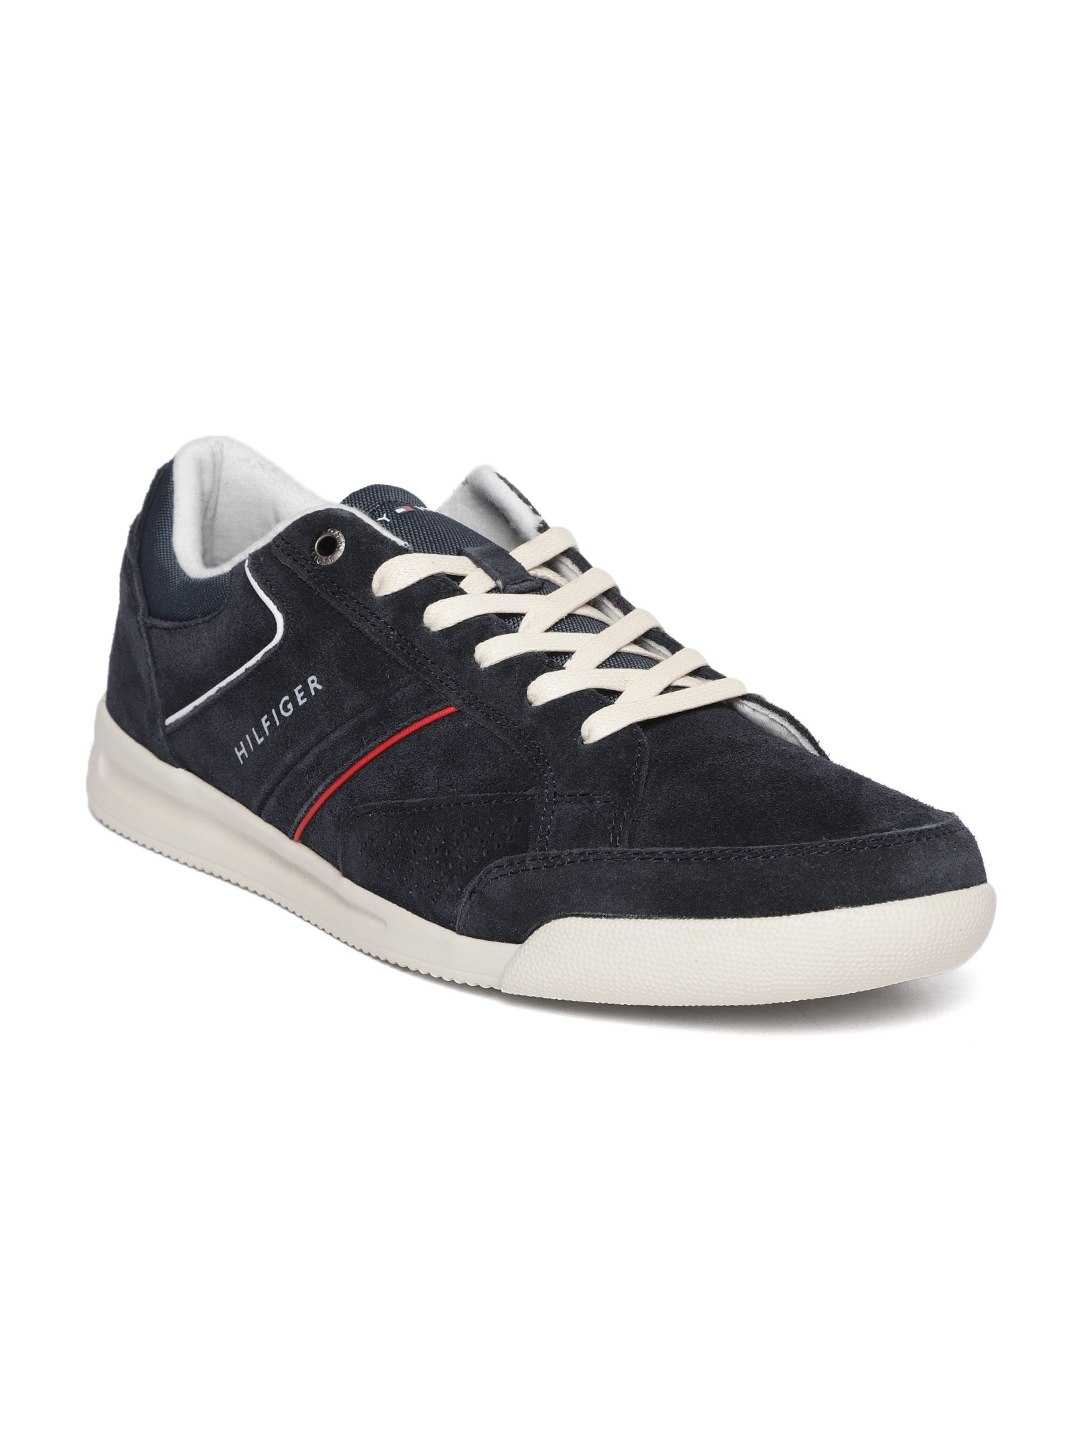 c4d83a8ce0c4 Buy Tommy Hilfiger Men Navy Blue Velvet Finish Sneakers - Casual ...